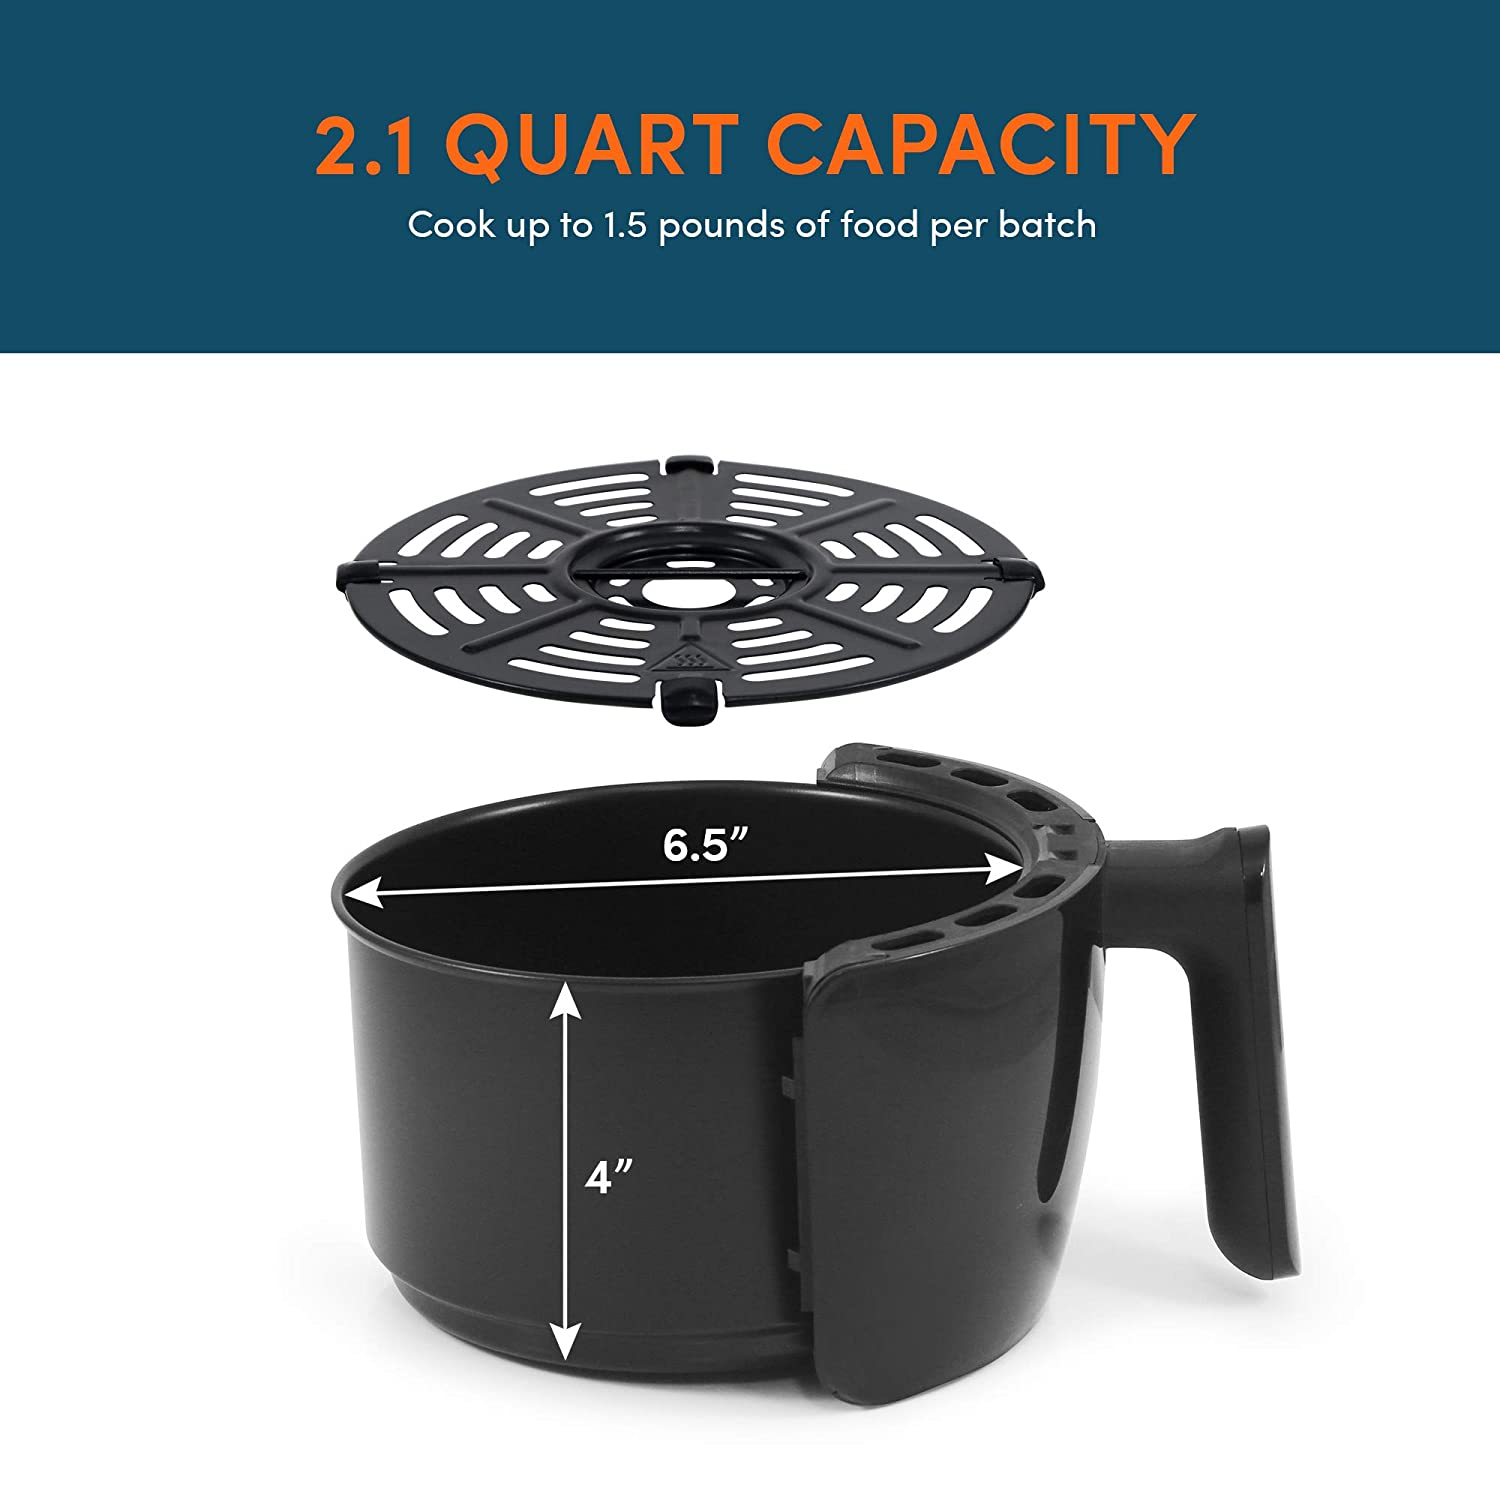 PFOA//PTFE Free Oil-Less Healthy Cooker Maxi-Matic EAF-8061 Personal Compact Space Saving Electric Hot Air Fryer Timer /& Temperature Controls Black 2.1 Quart 1000-Watts with Recipes